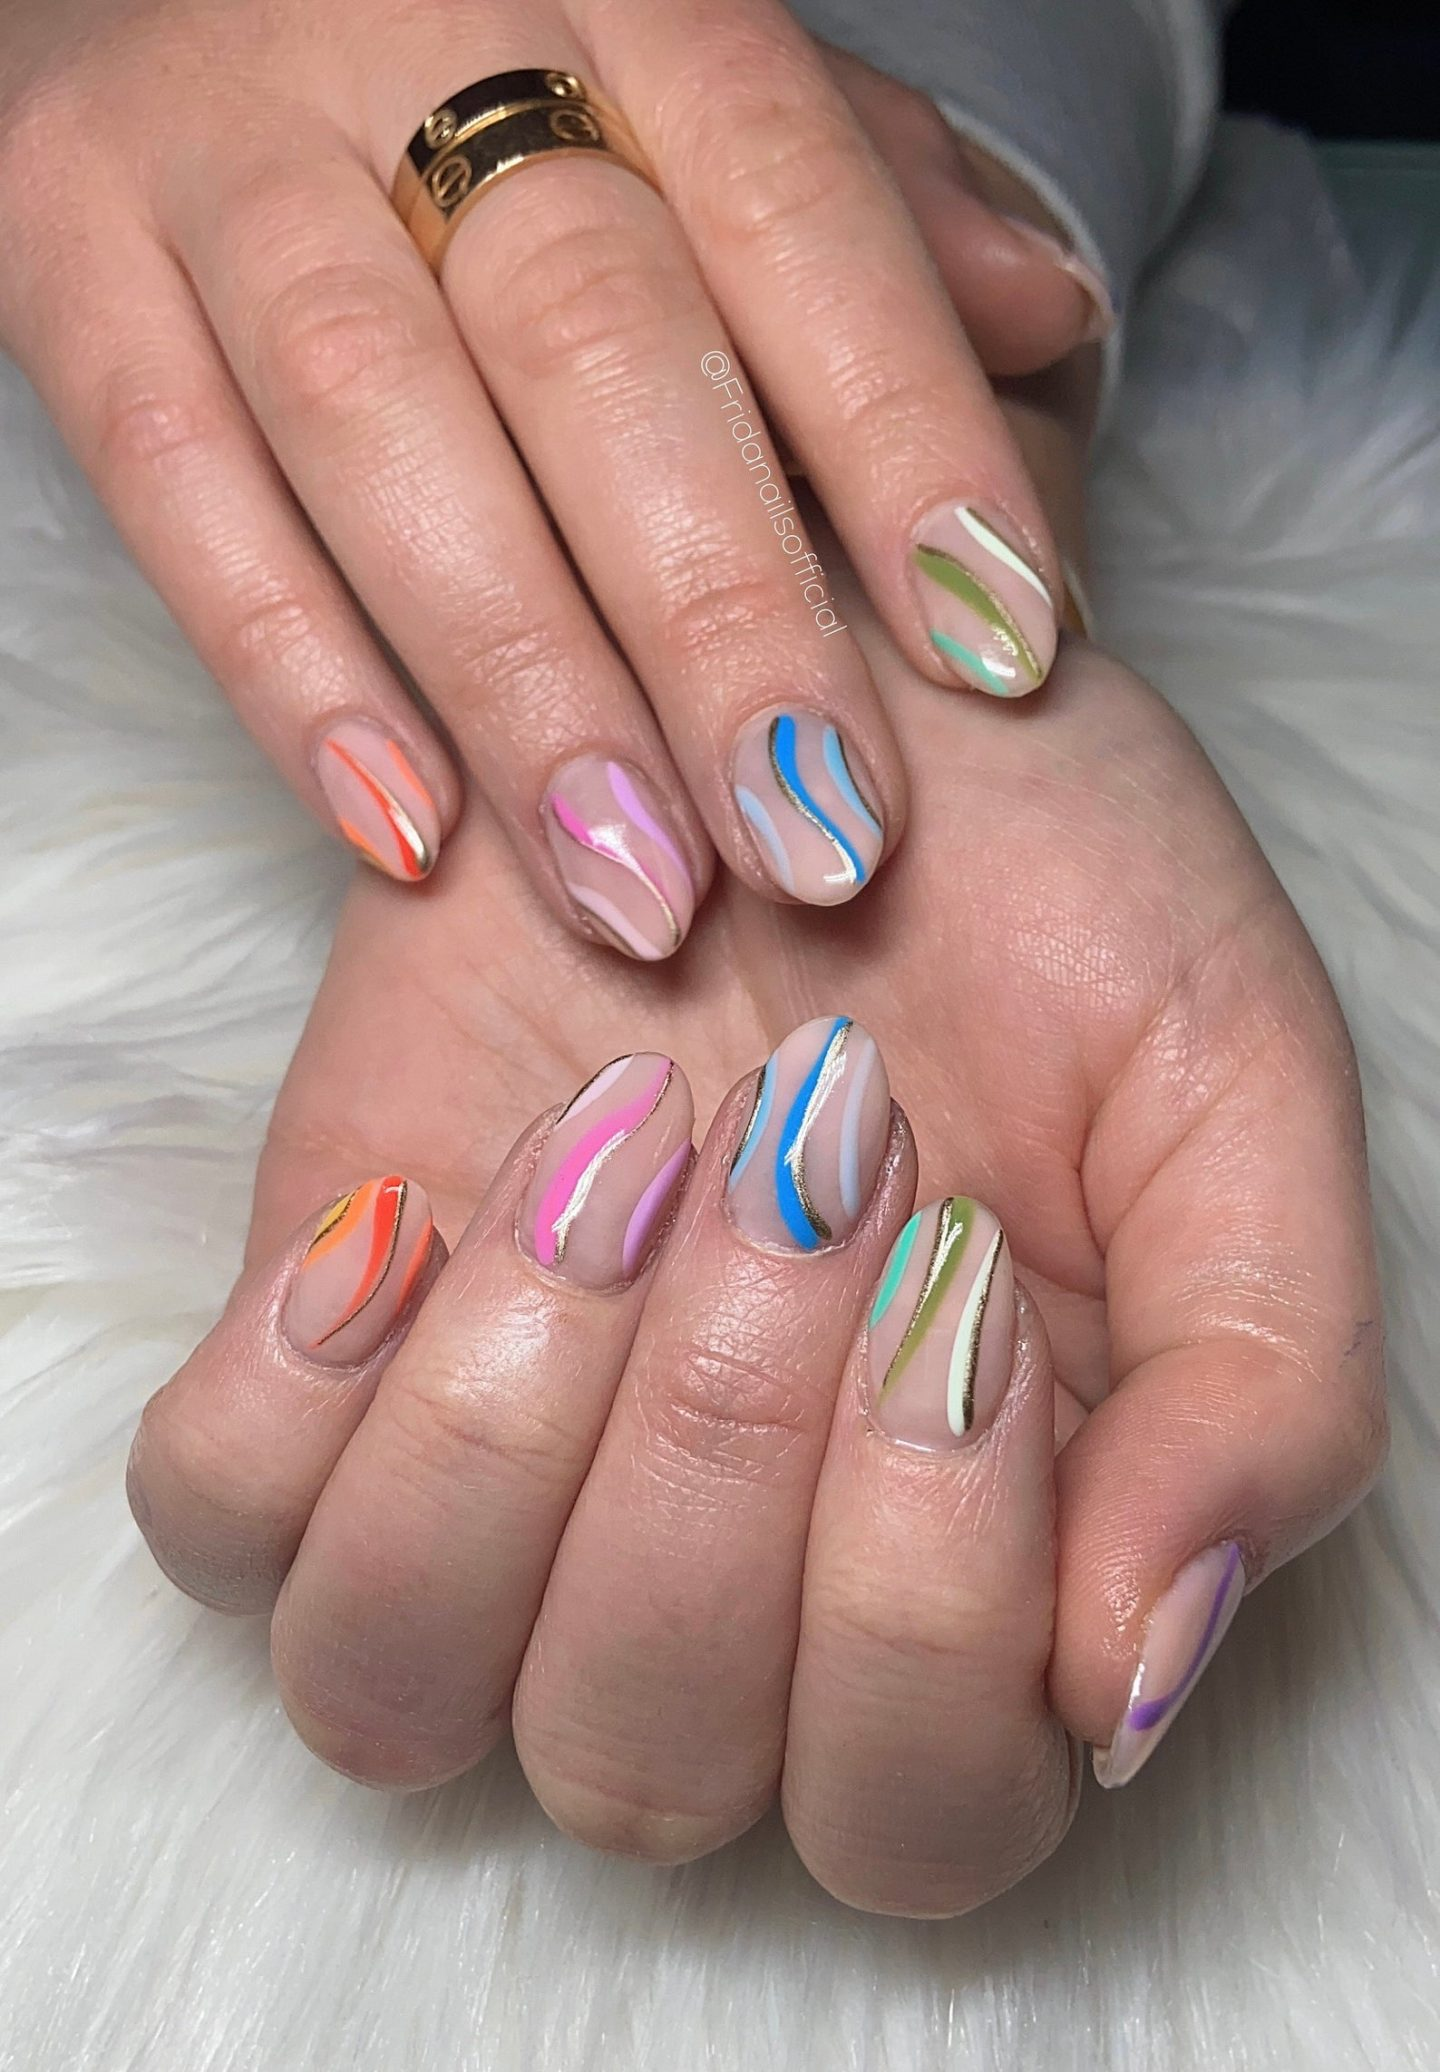 Minimalist colorful nails with lines